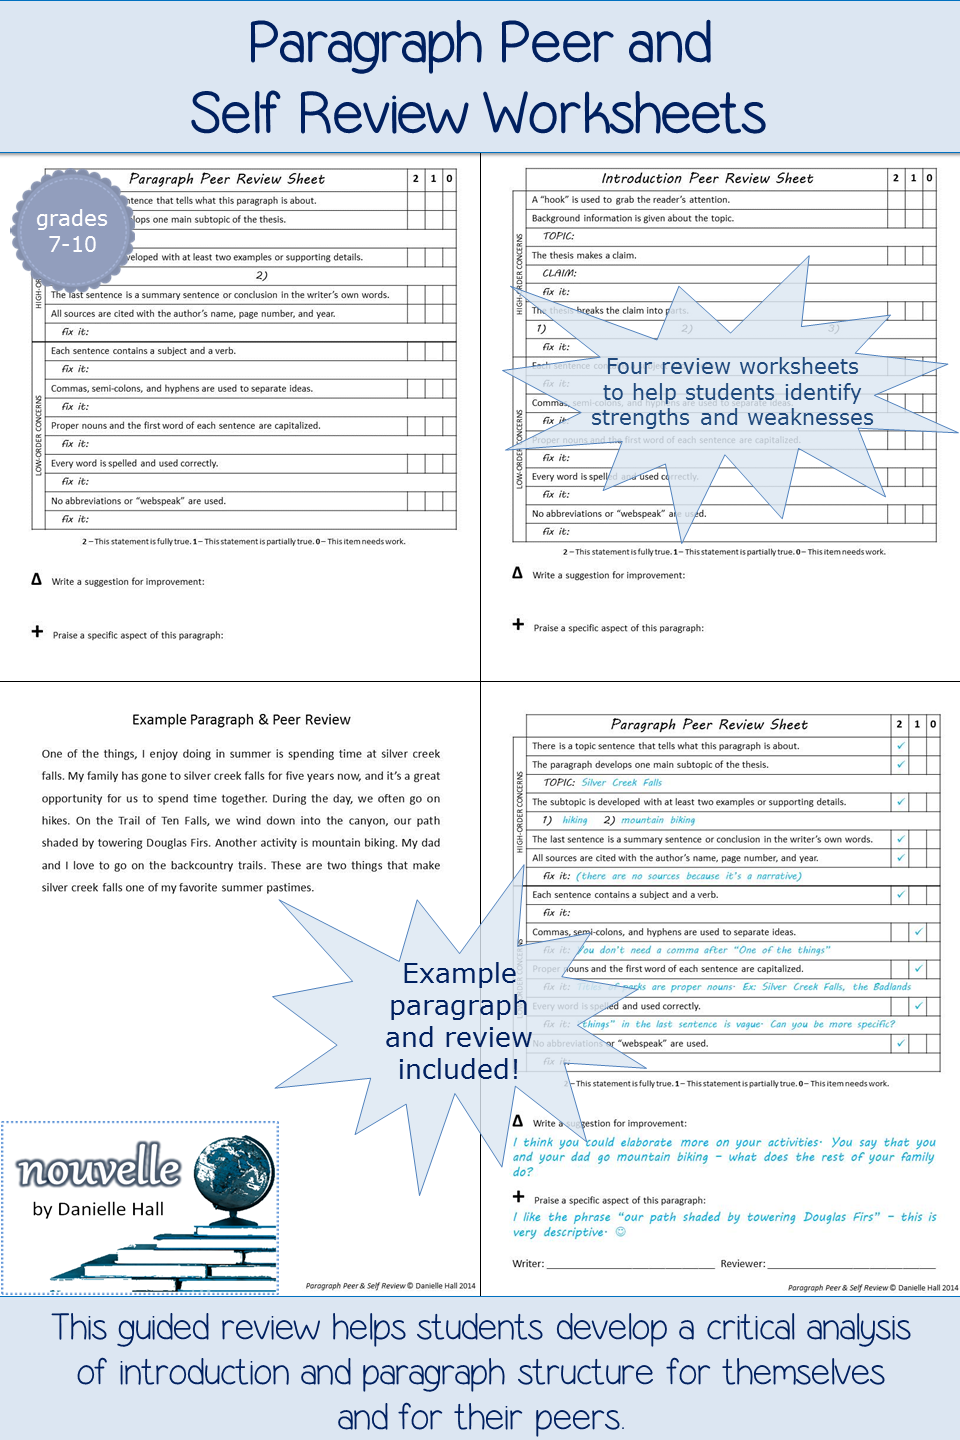 Worksheets Writing Paragraphs Worksheet paragraph peer and self review worksheets sample included these help students introductions body paragraphs step by this